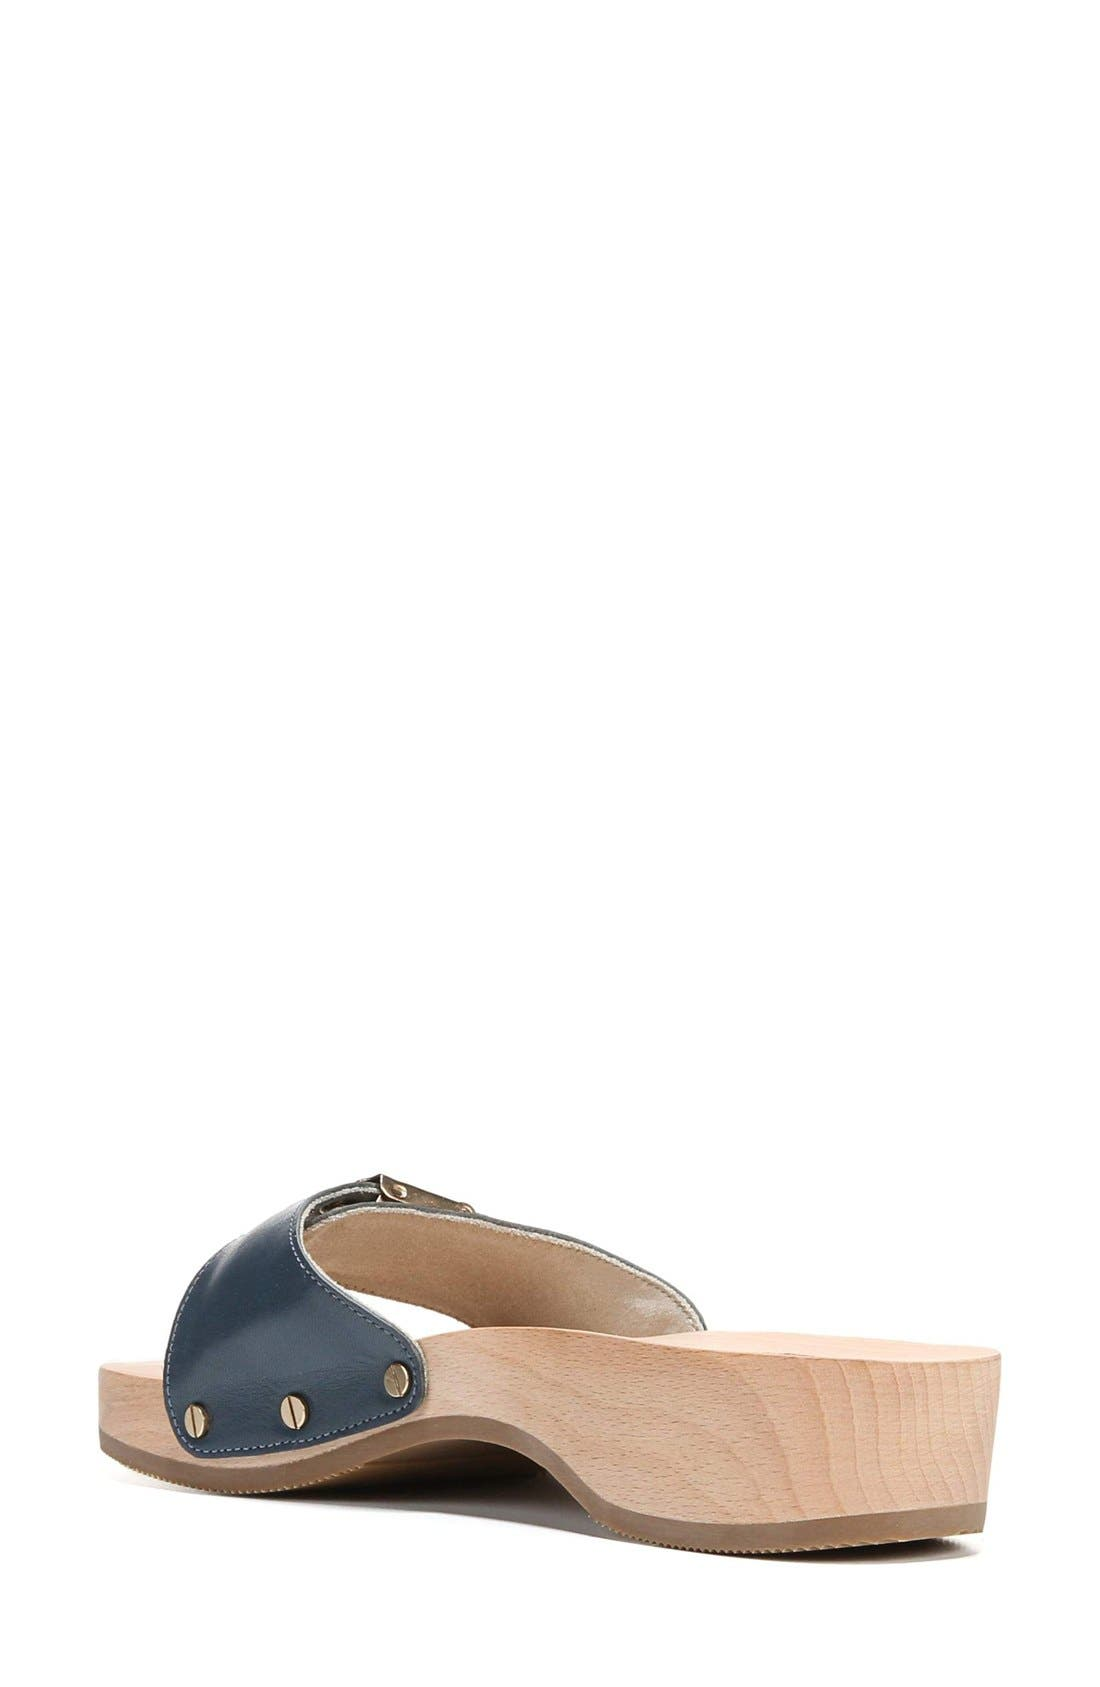 d40881c6bbeb1a Women's Red Mules & Slides | Nordstrom